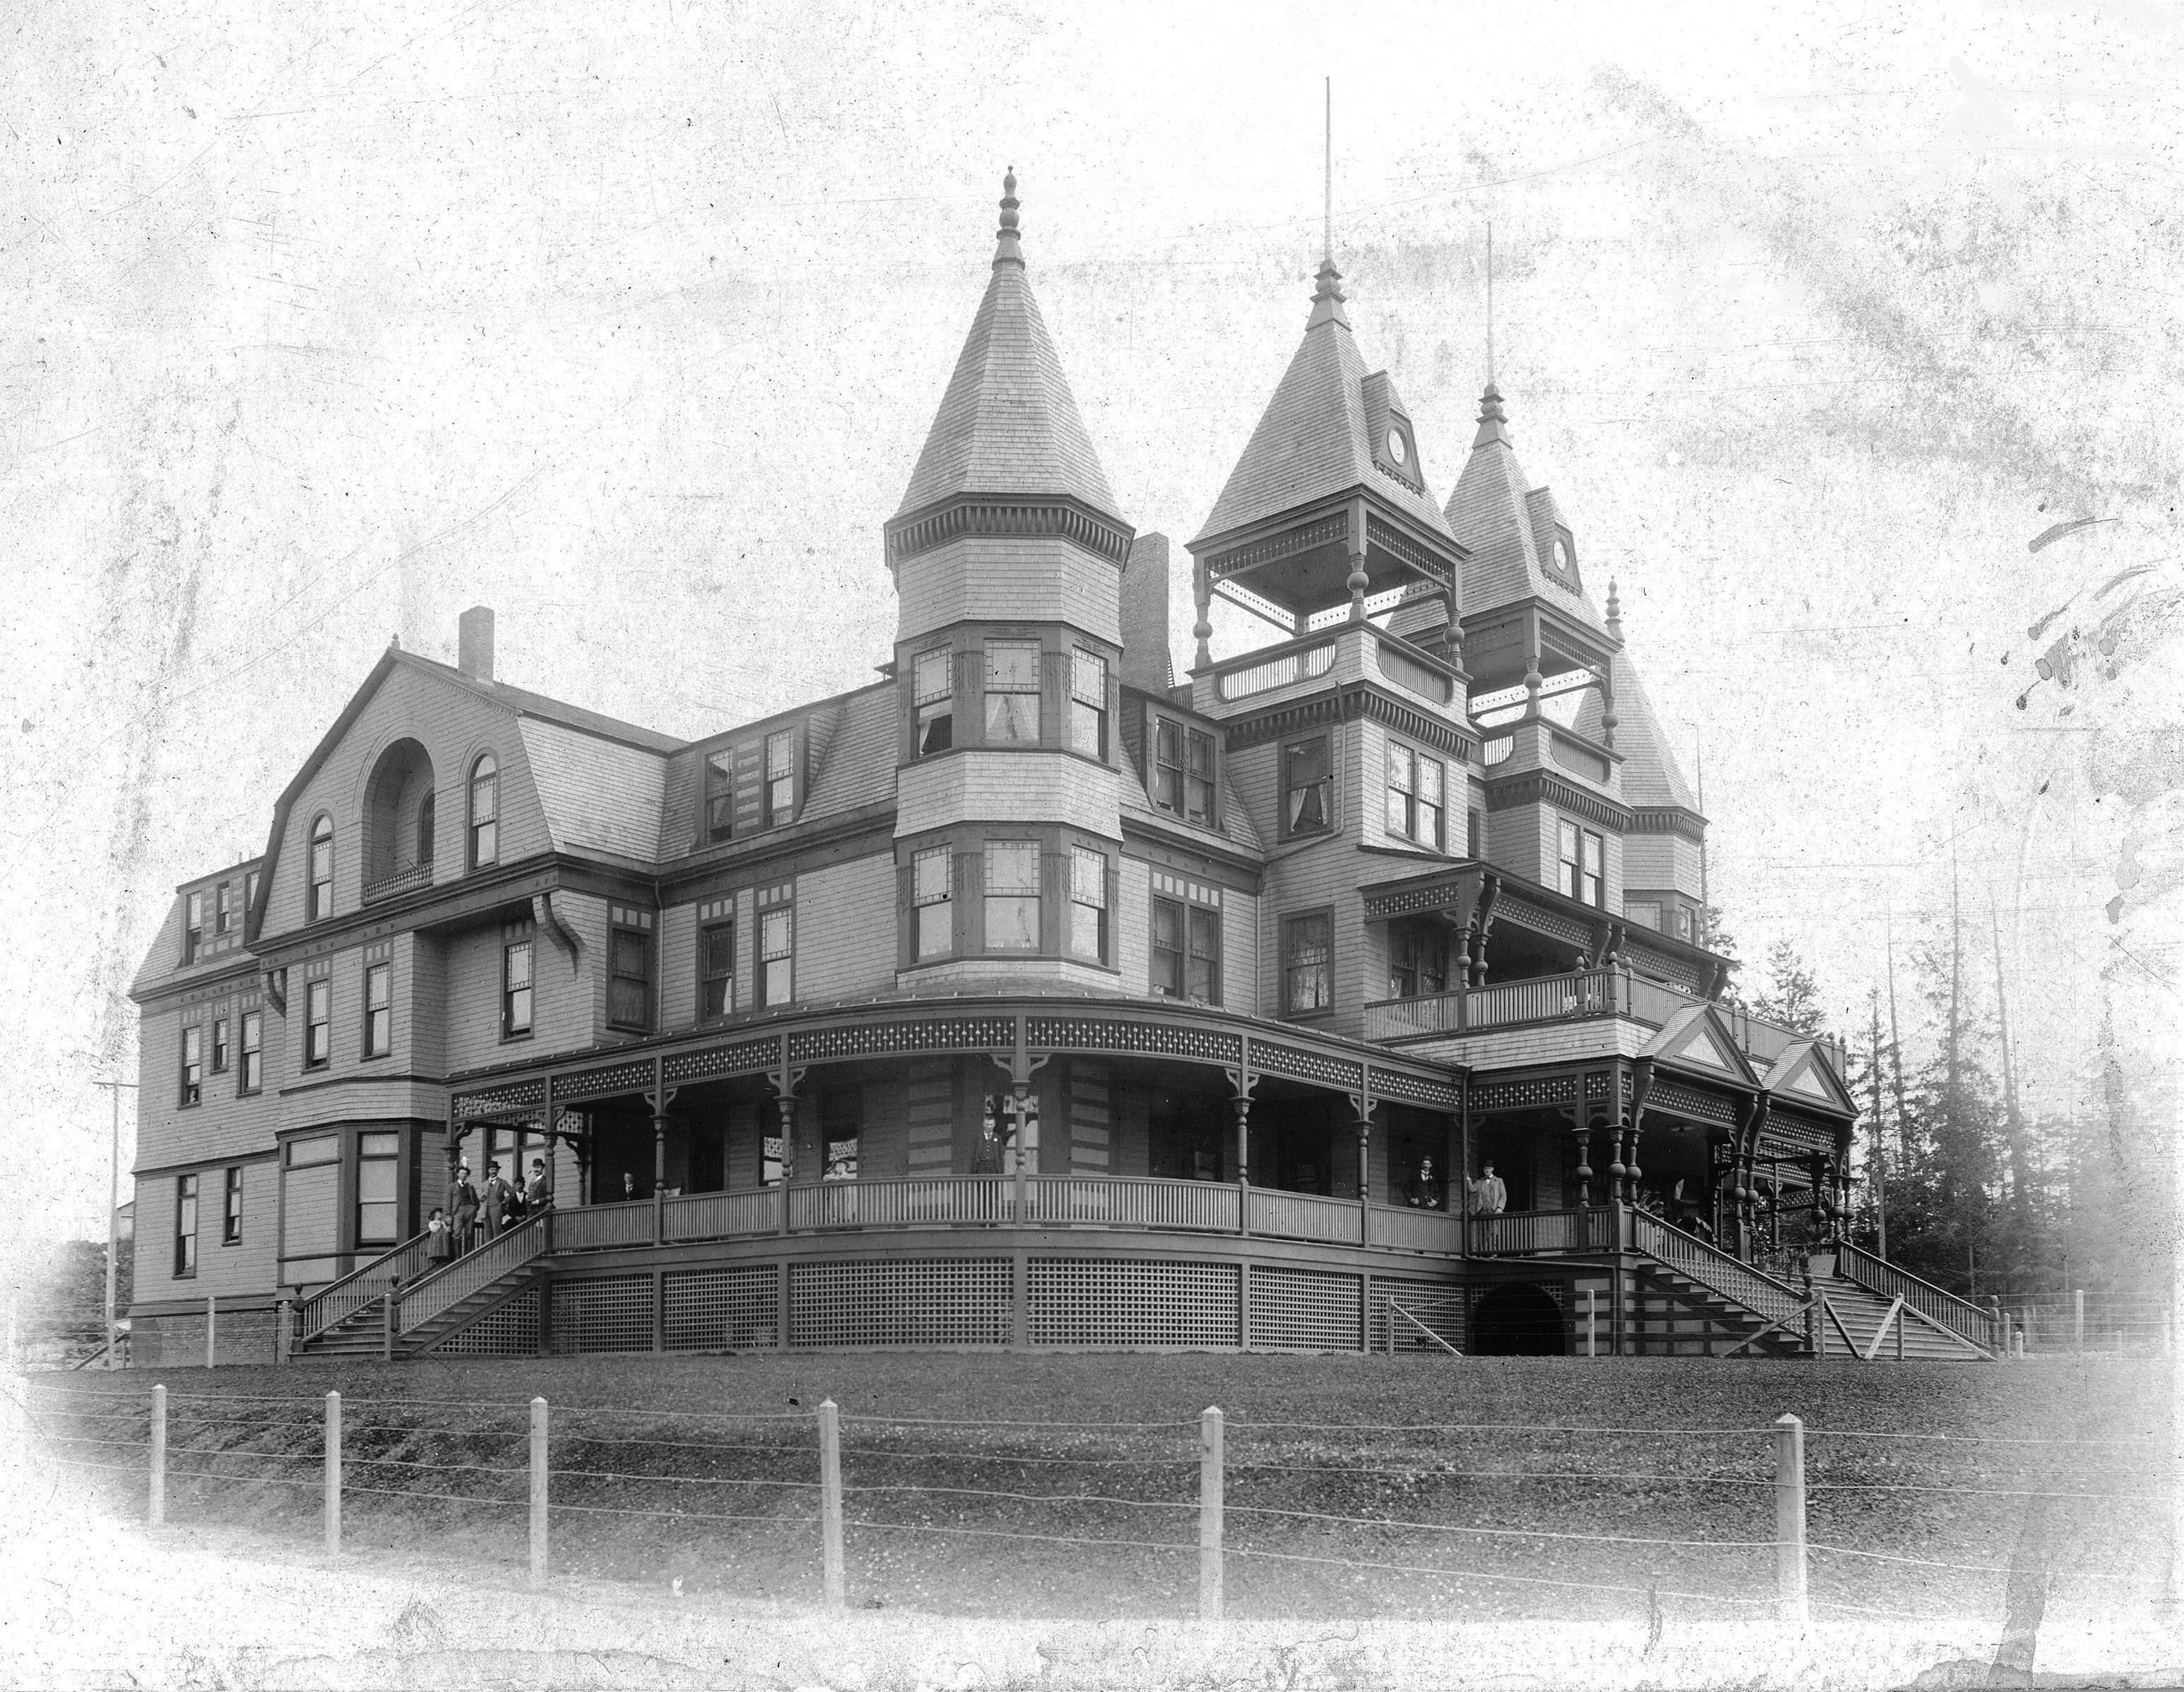 Historic image of original Monte Cristo Hotel in Everett